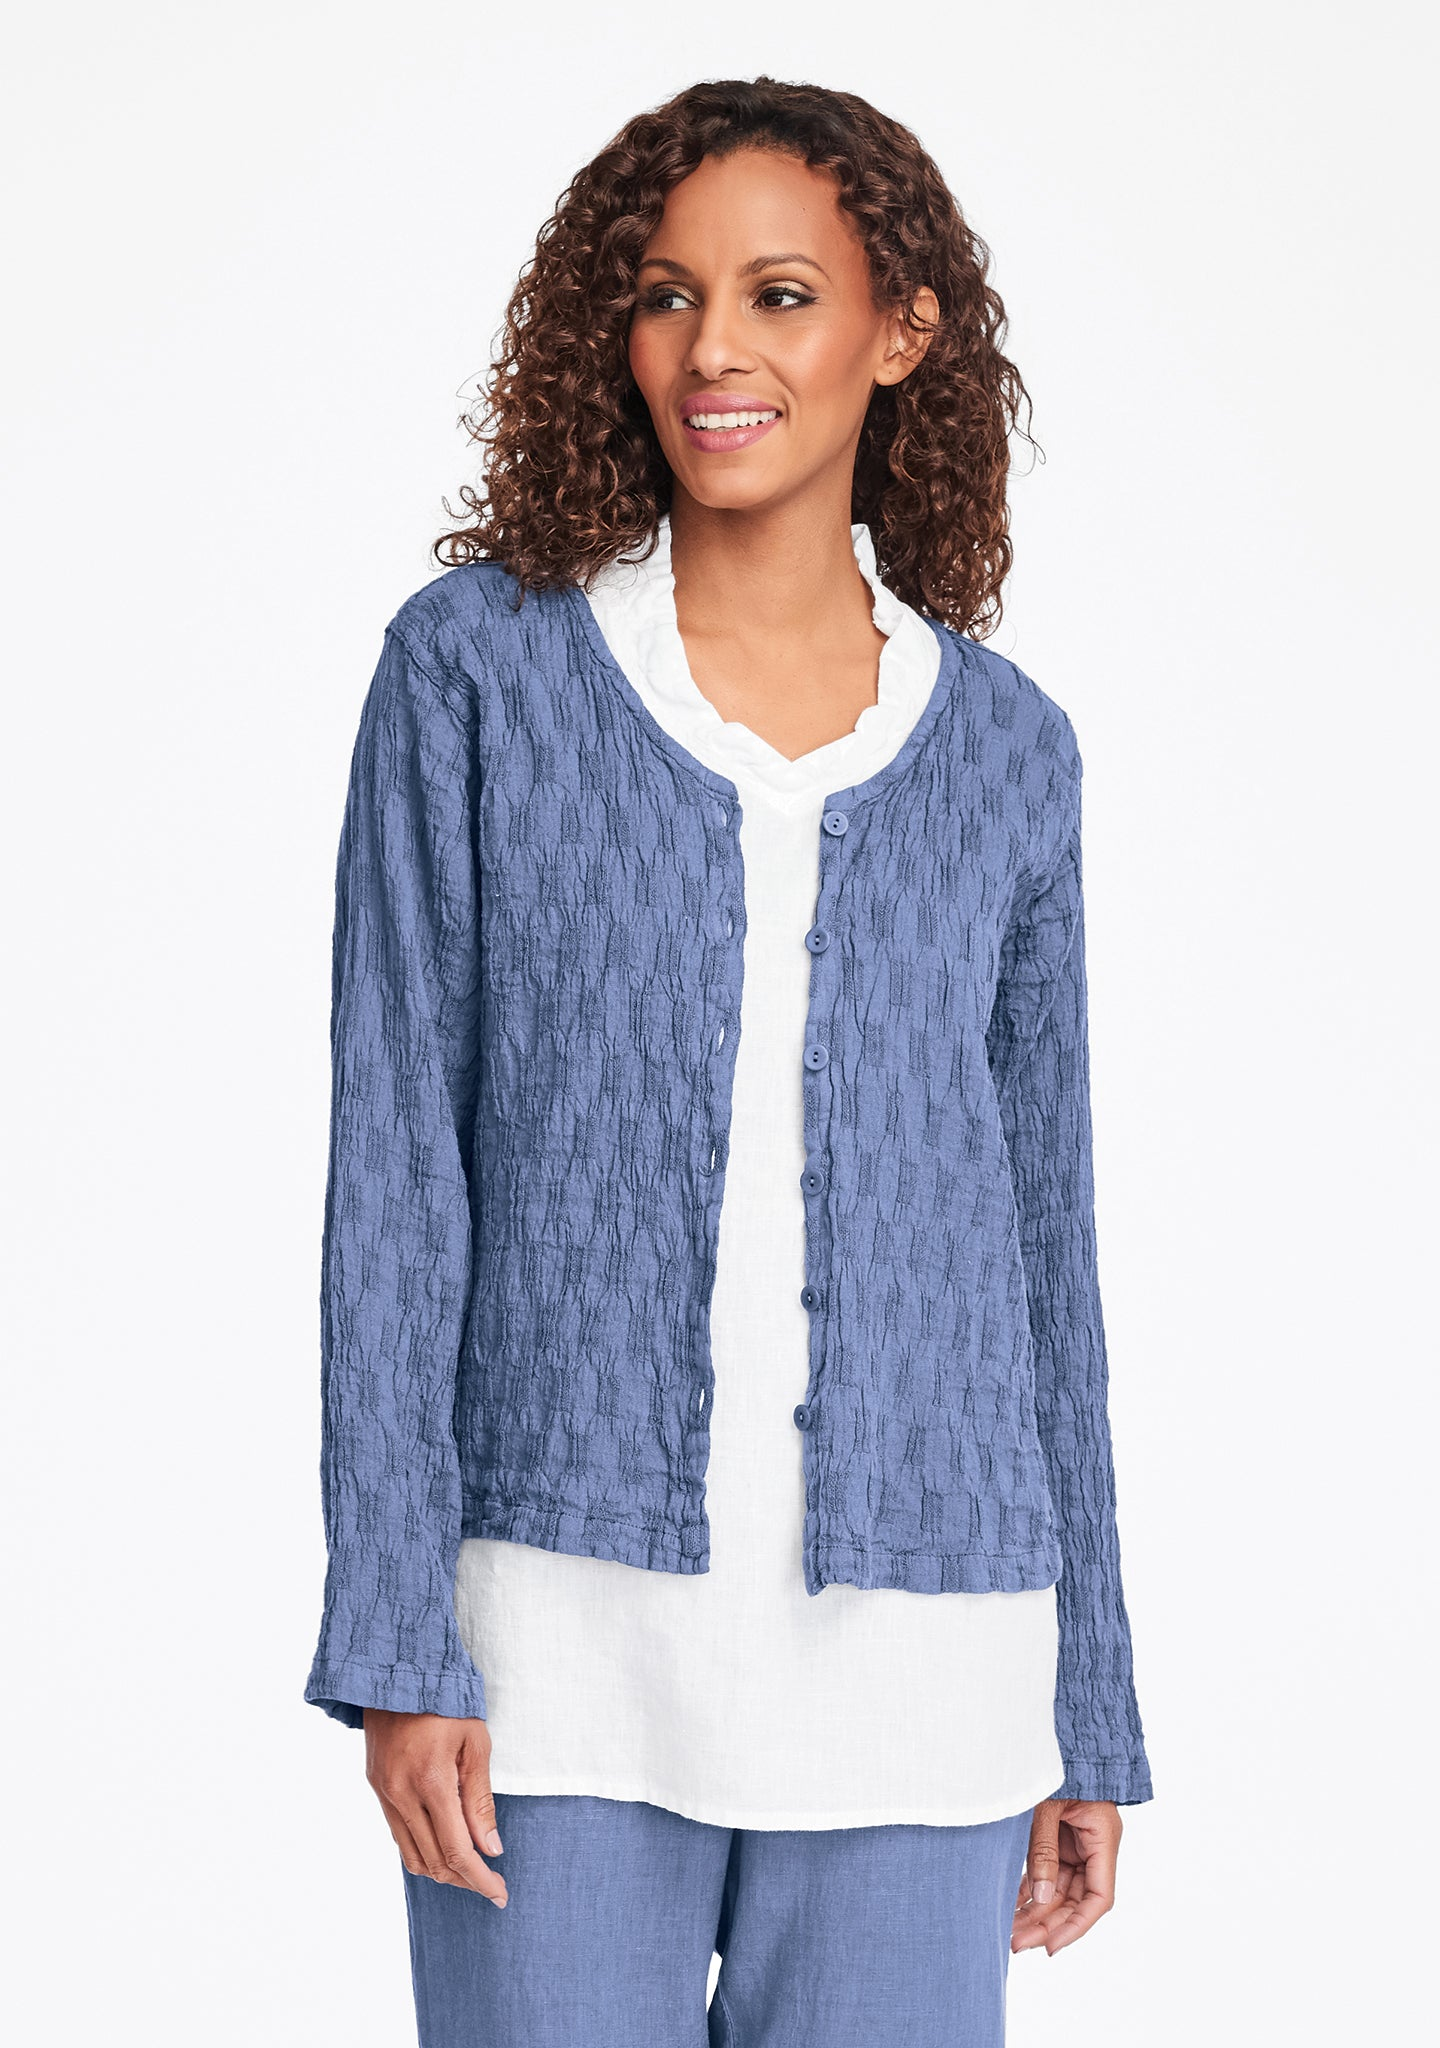 v neck cute cardi linen cardigan blue